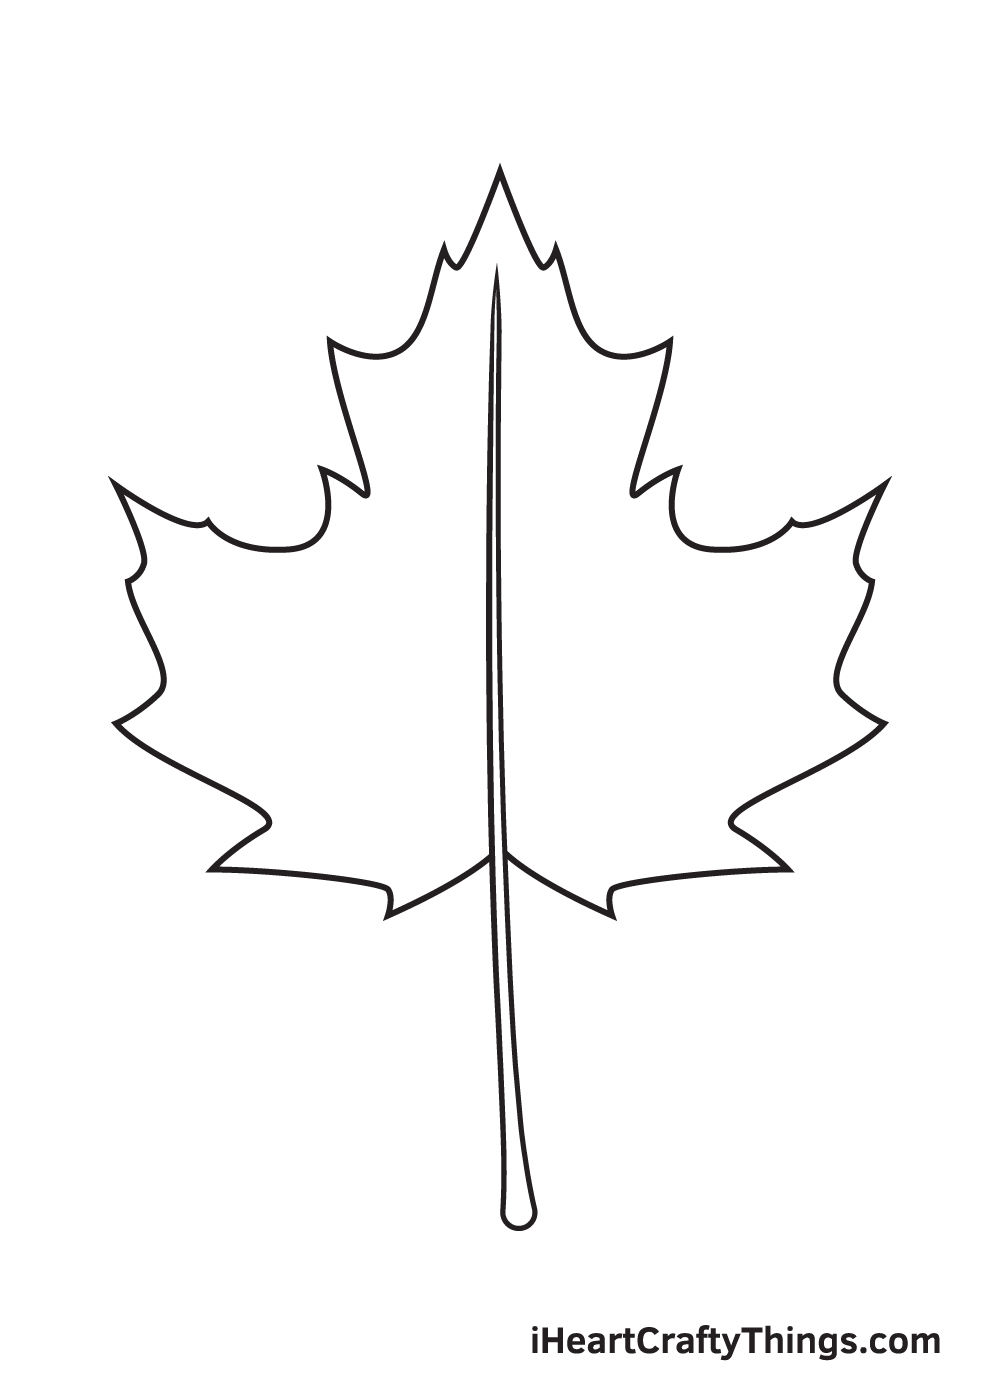 fall leaves drawing step 7